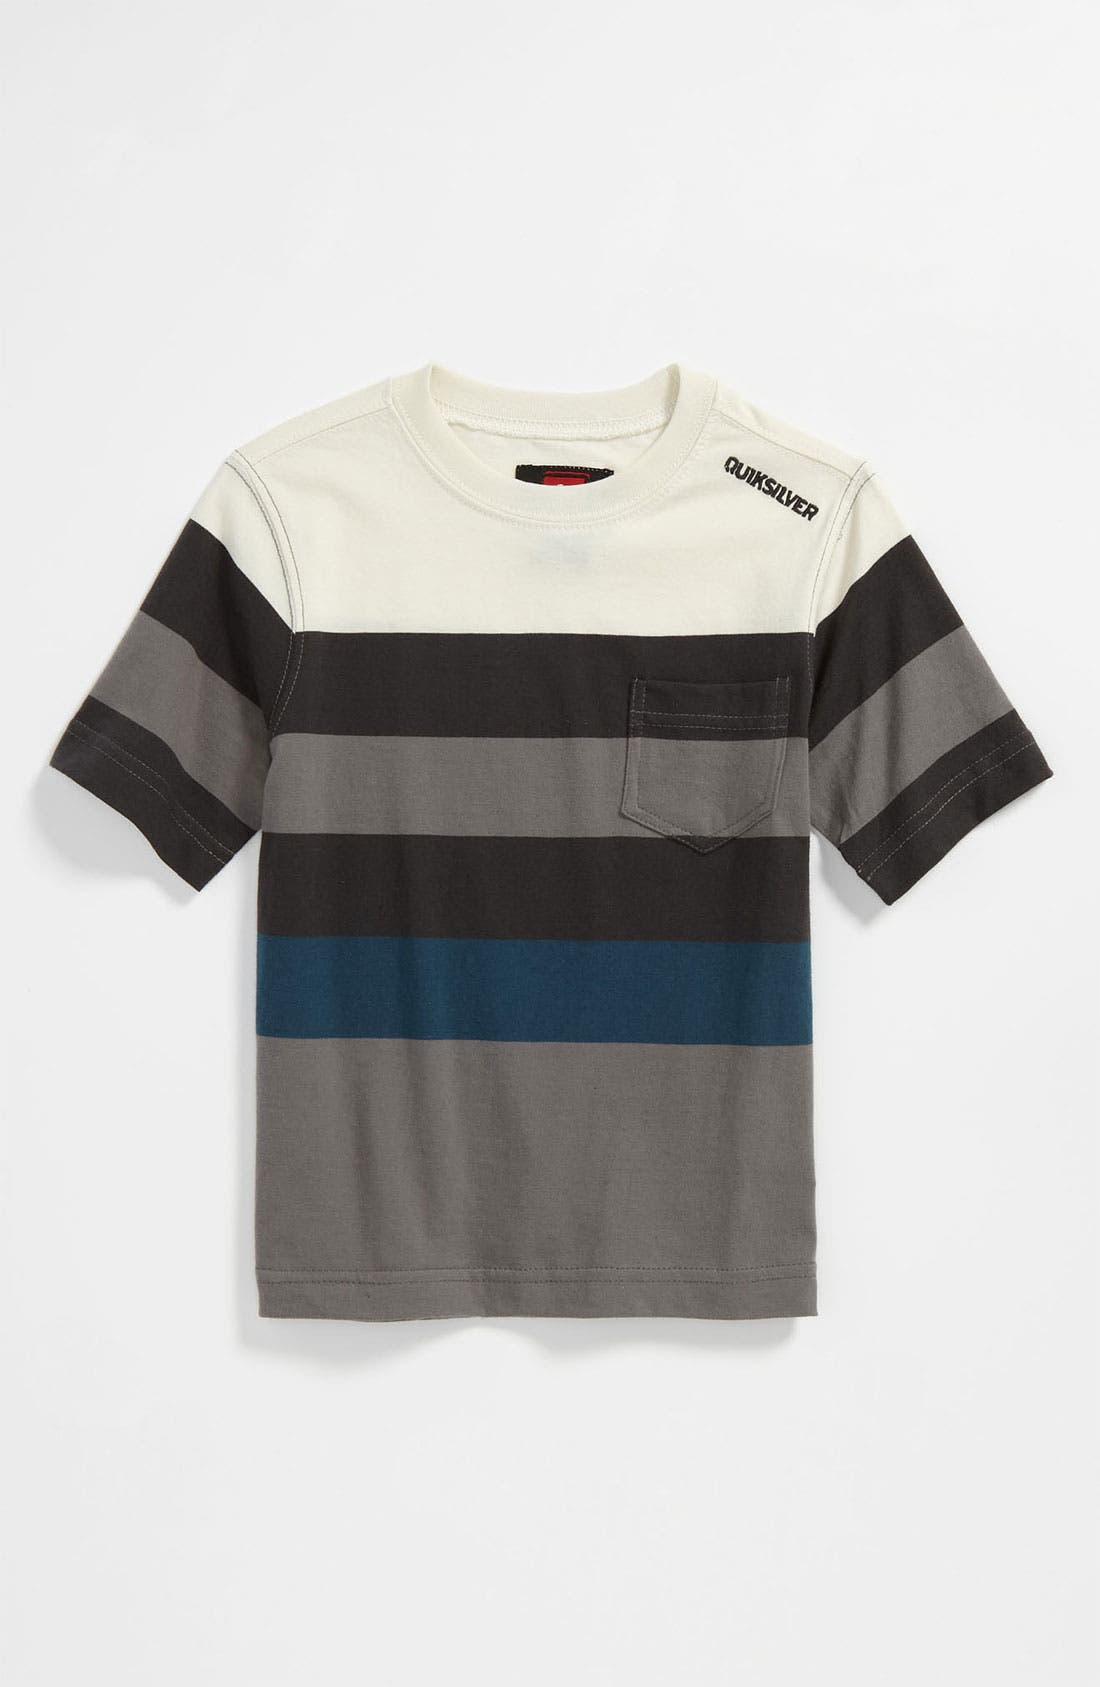 Alternate Image 1 Selected - Quiksilver 'Mobley' Stripe T-Shirt (Toddler)